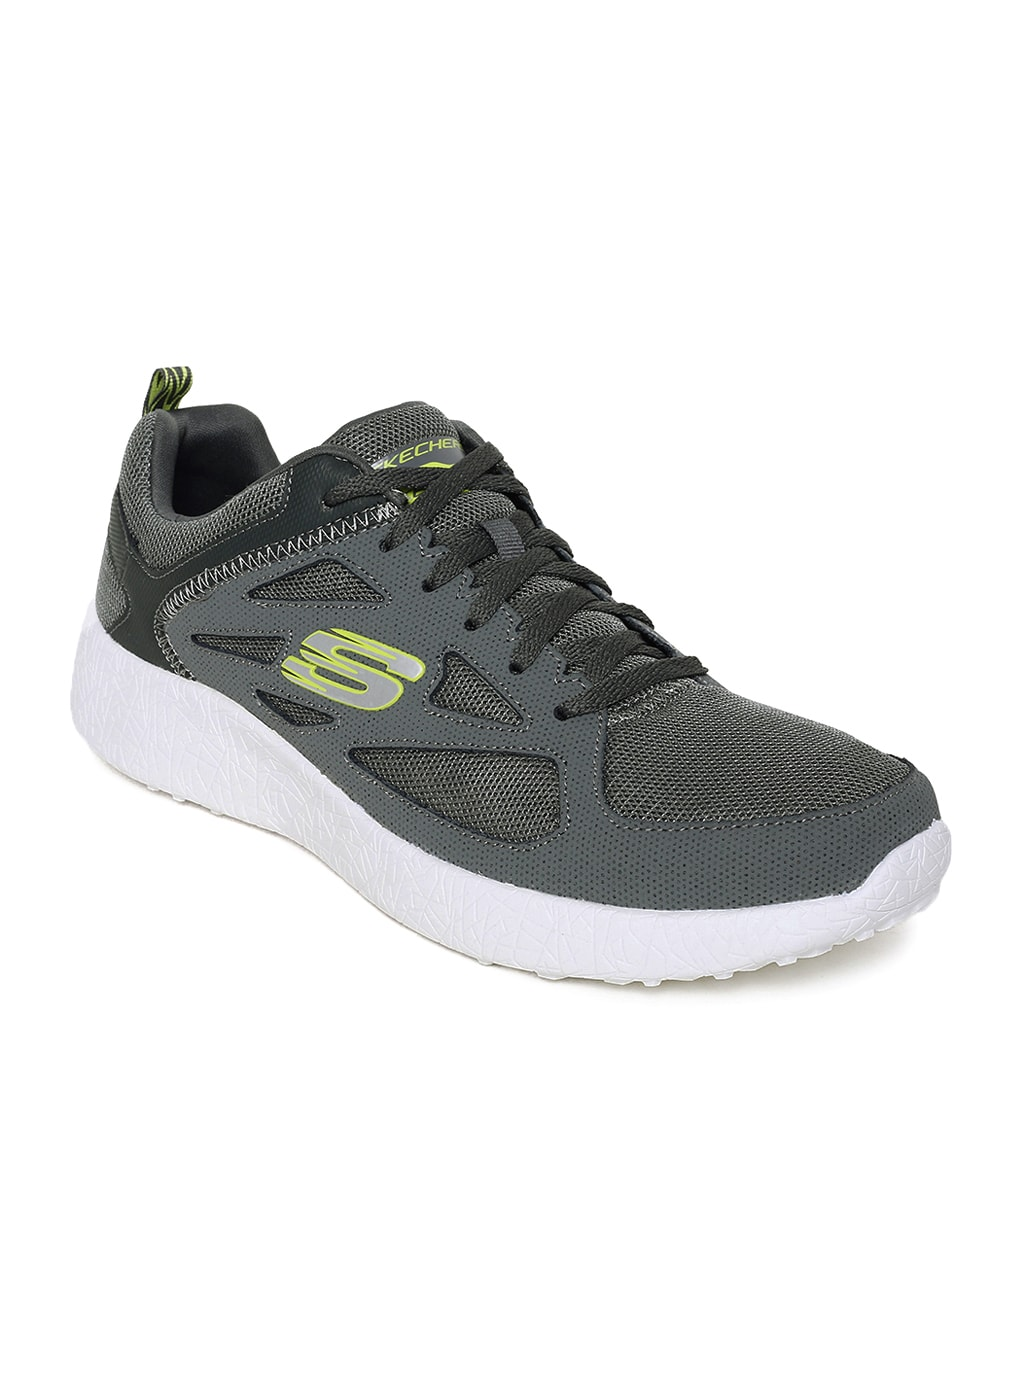 422ba3923257ec Skechers - Buy Skechers Footwear Online at Best Prices